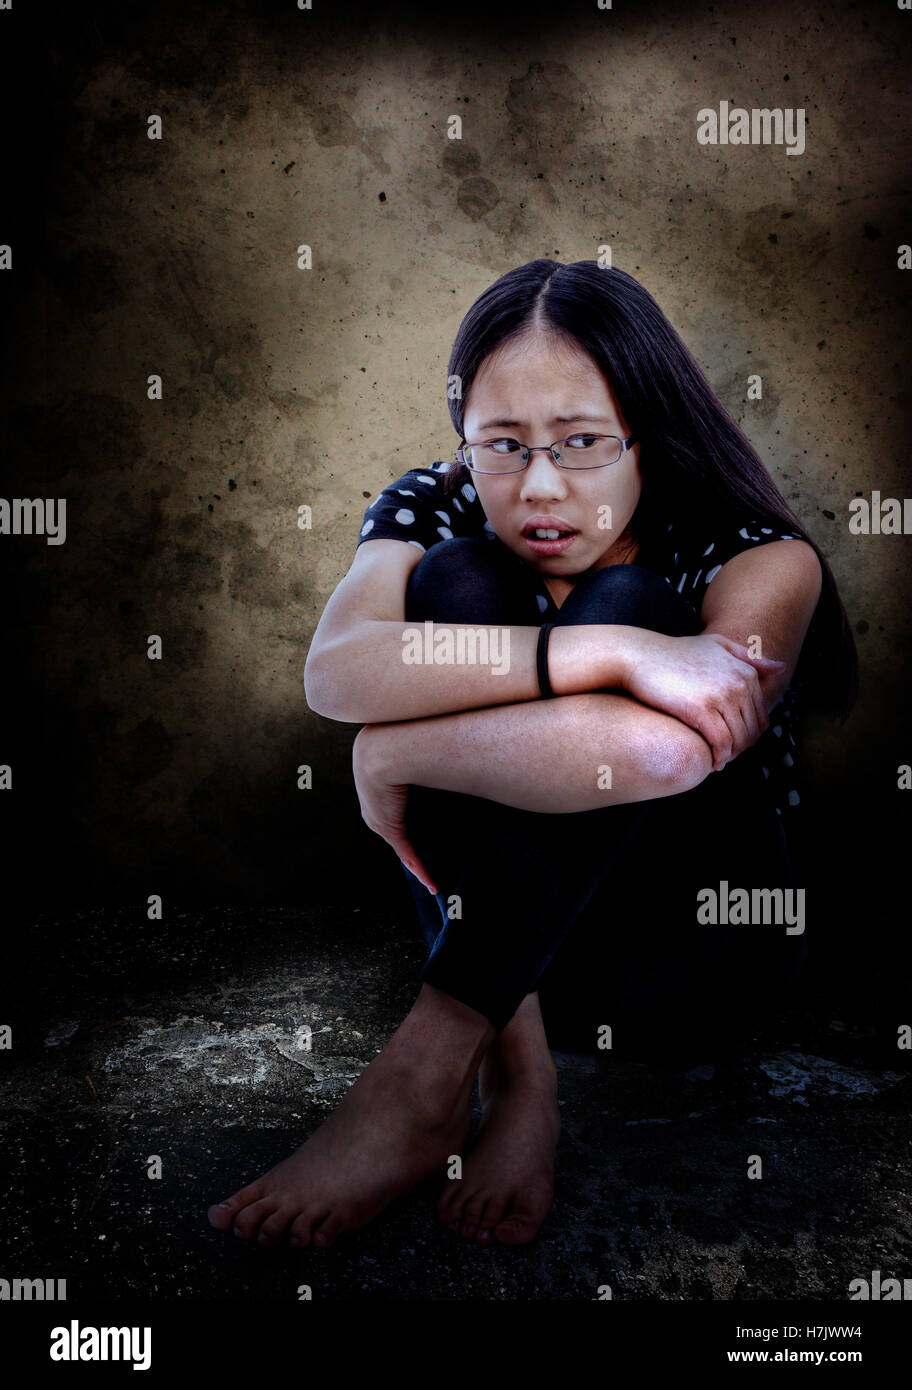 Distressed and frightened Asian tween, with copy space. - Stock Image